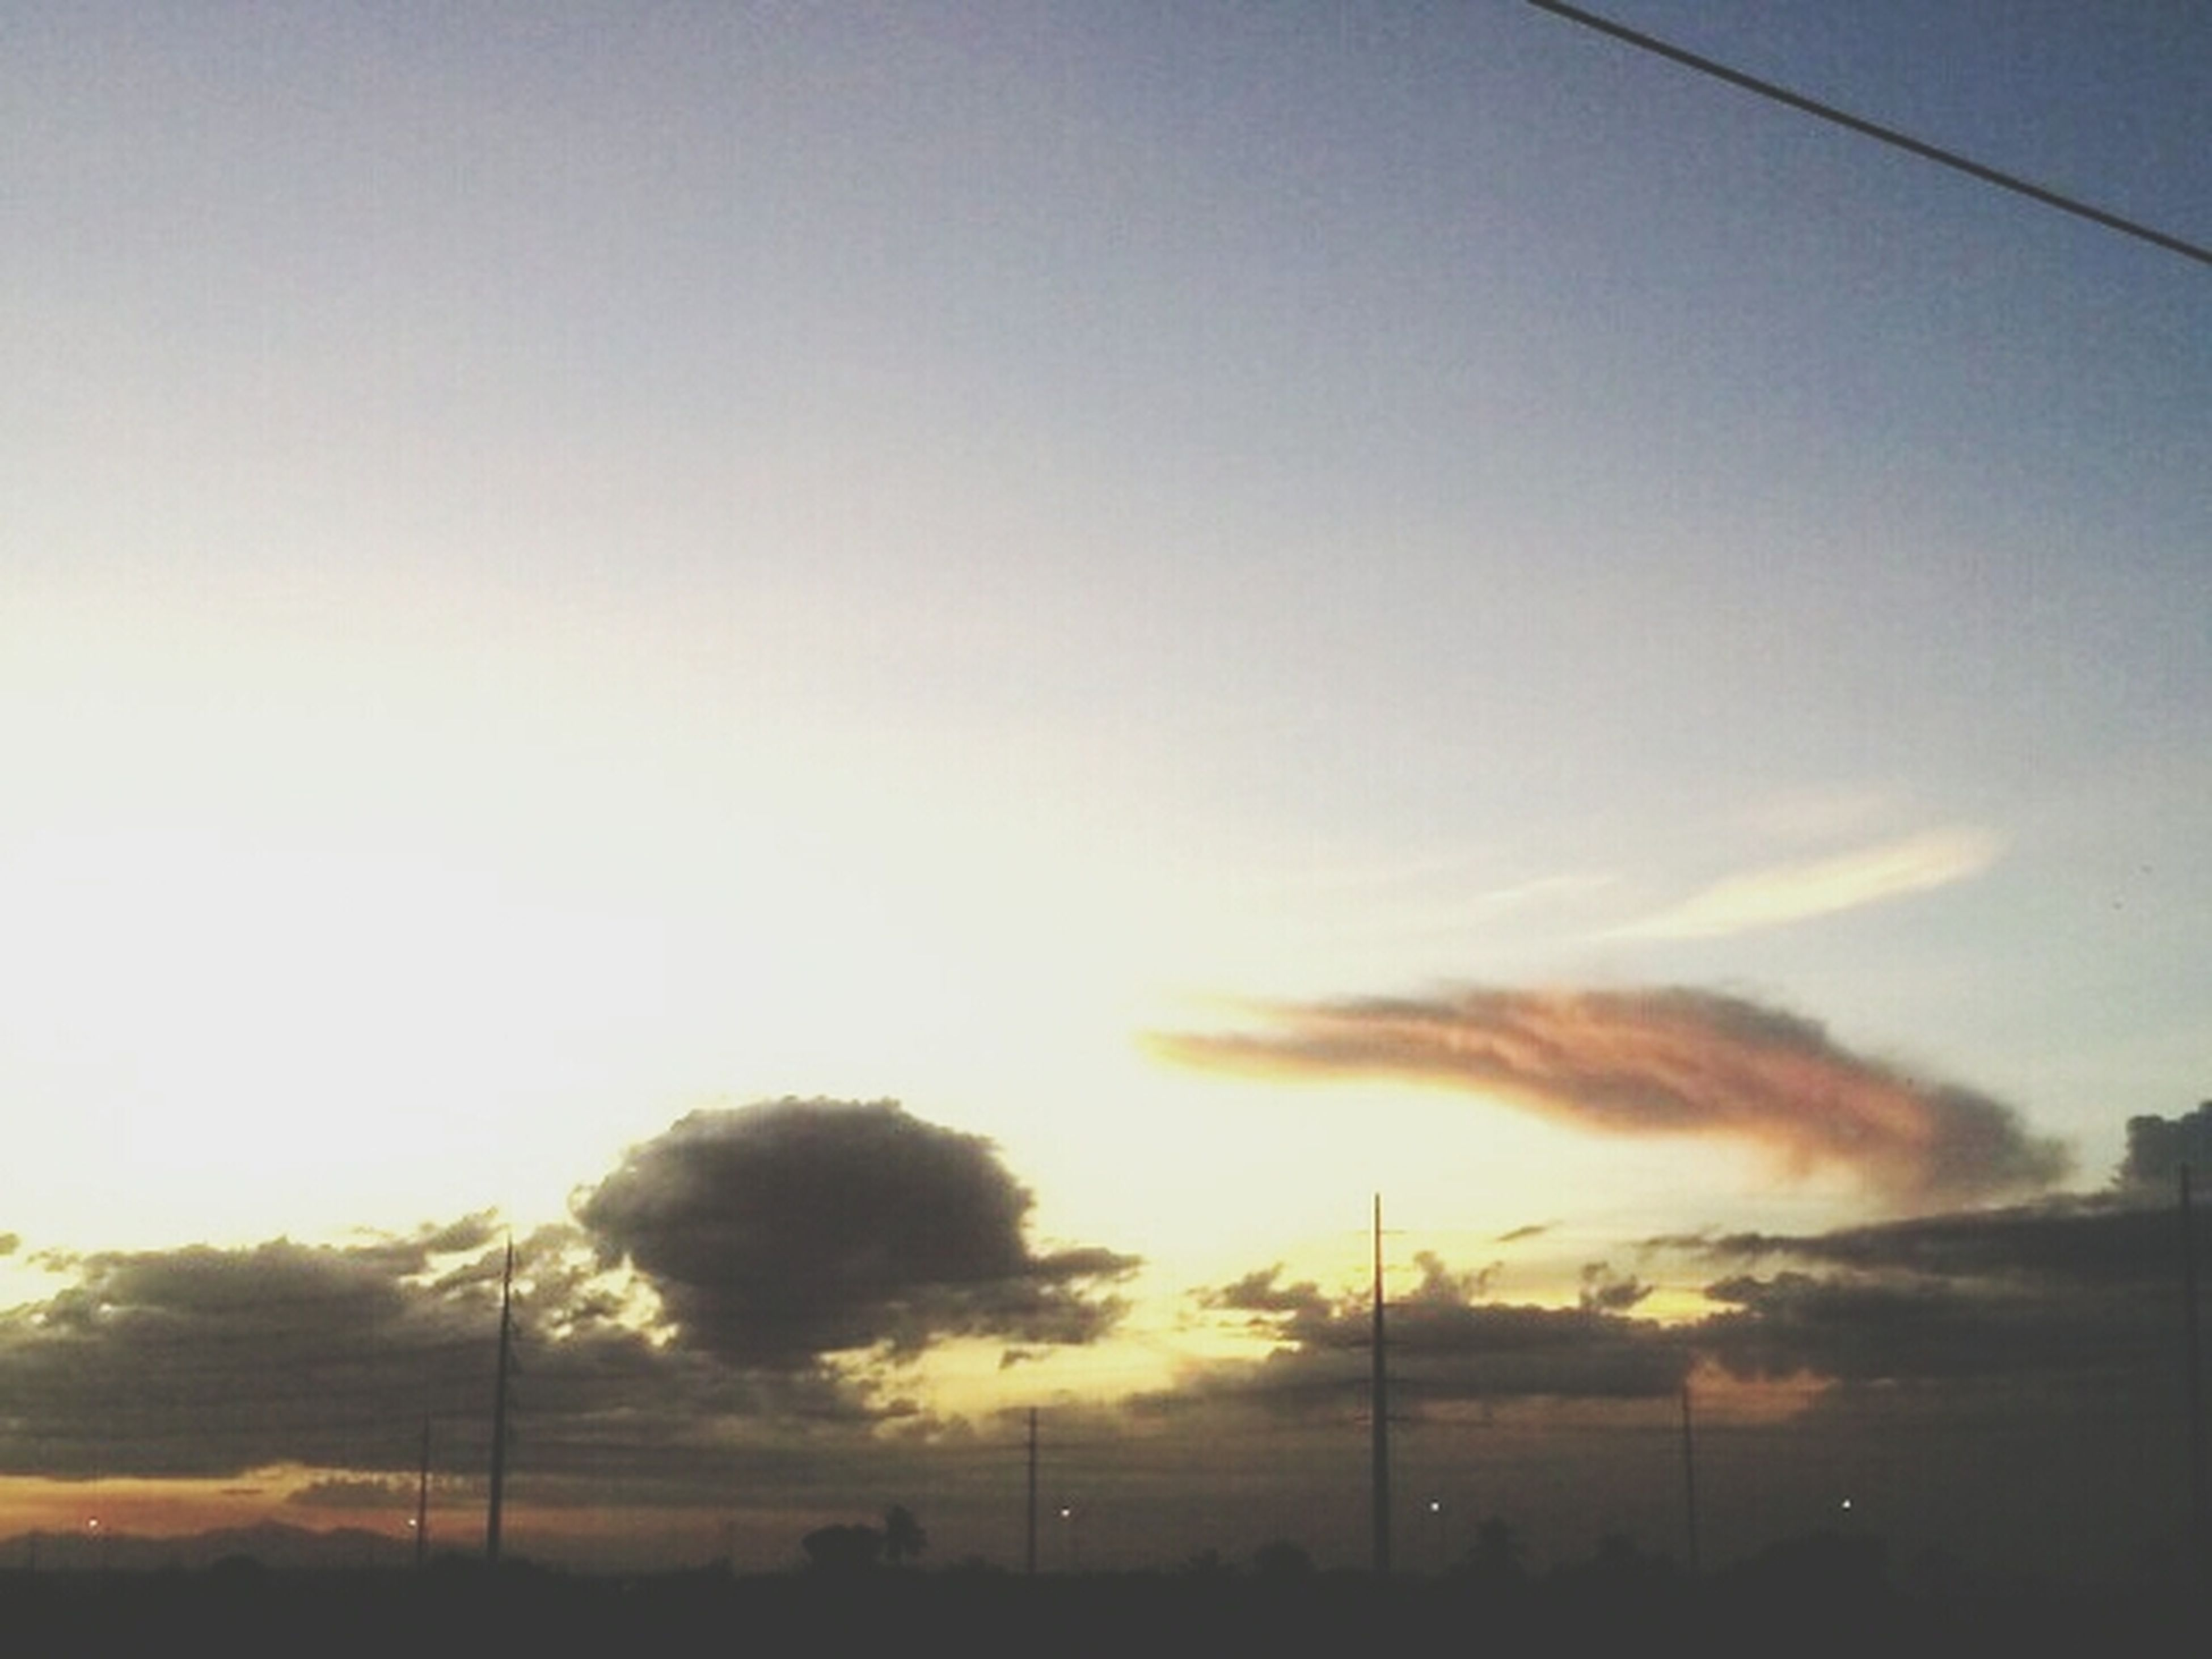 sunset, sky, silhouette, tranquility, tranquil scene, beauty in nature, electricity pylon, scenics, nature, low angle view, landscape, orange color, field, fuel and power generation, electricity, cloud - sky, street light, outdoors, power line, dusk